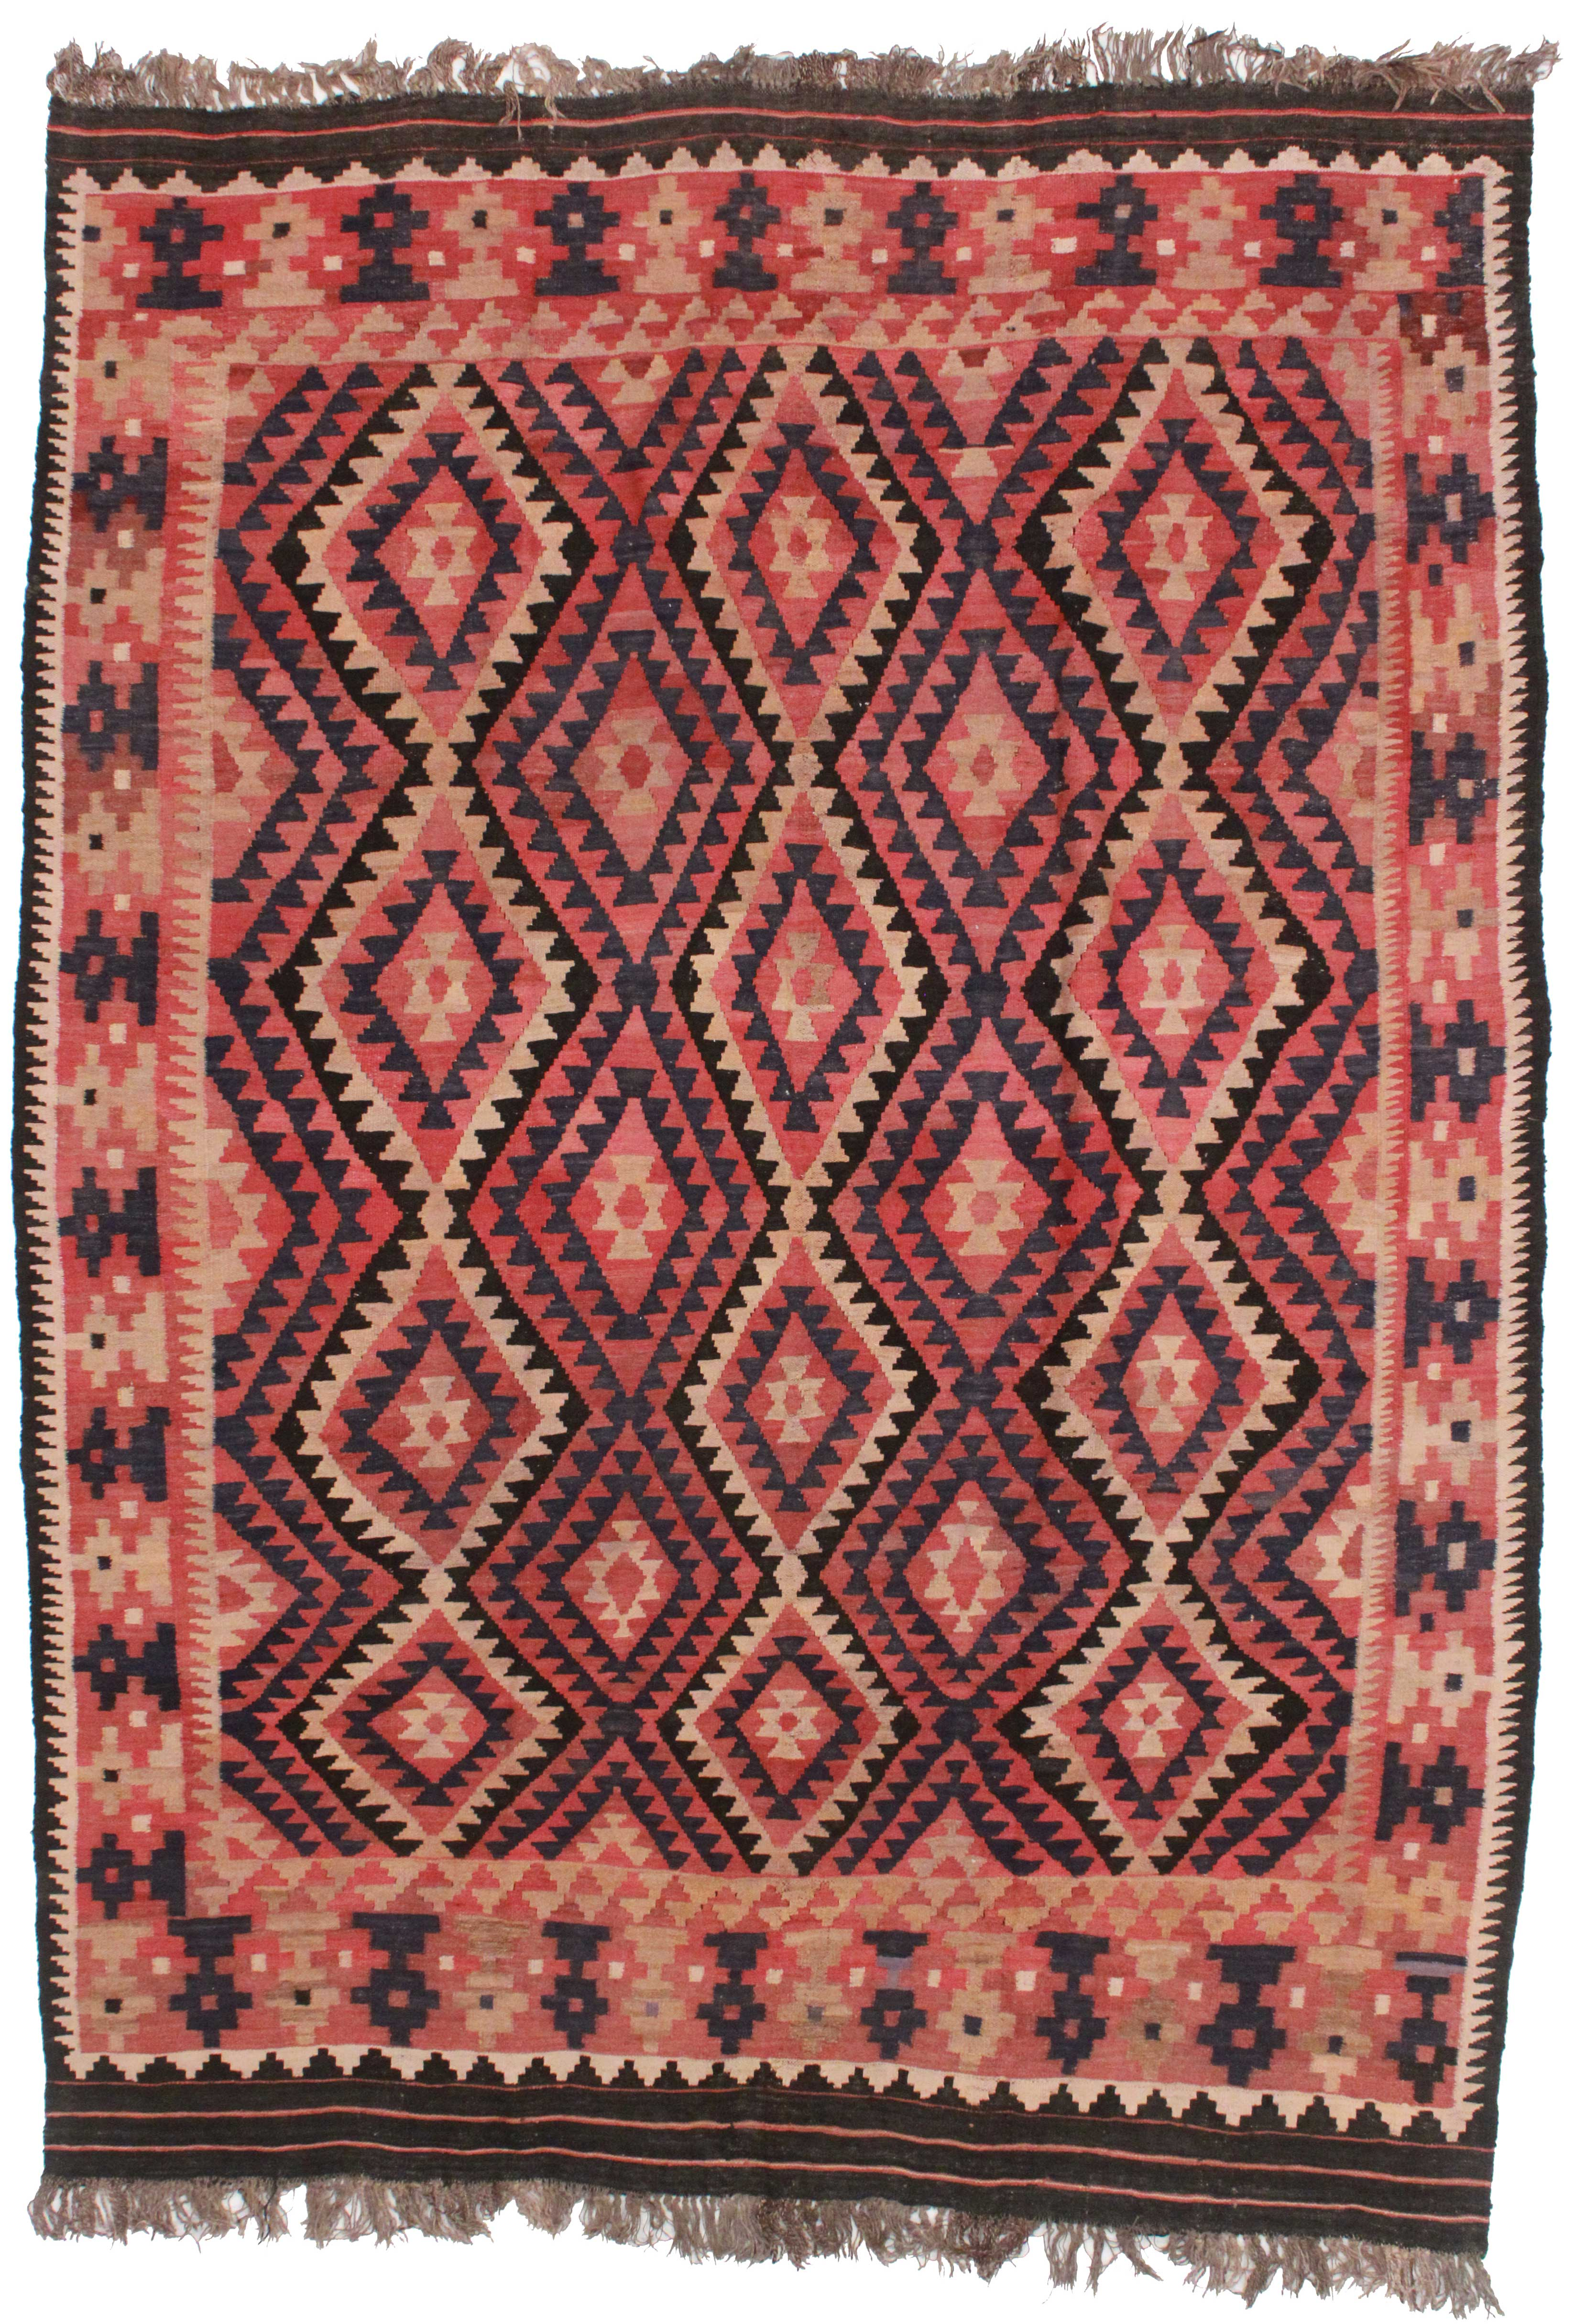 afghan rugs archives exclusive oriental rugs. Black Bedroom Furniture Sets. Home Design Ideas